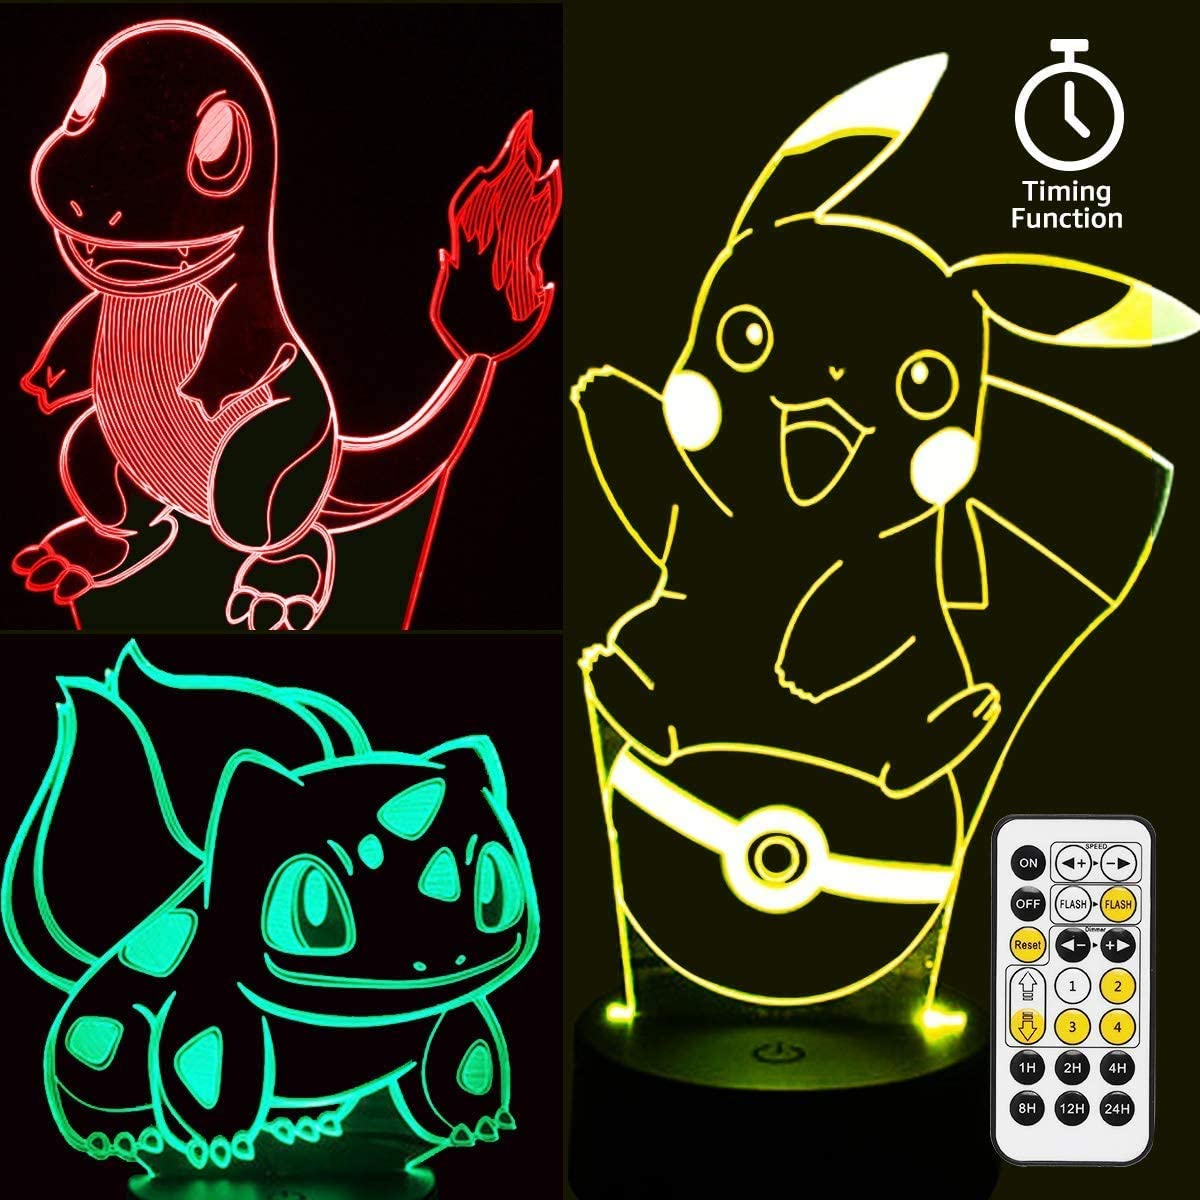 Pikachu Night Light - 3D Illusion Lamp Three Patterns,Timing Function and 7 Color Change Decor Lamp with Remote Control, Christmas Gifts for Boys Girls Kids Room Decor